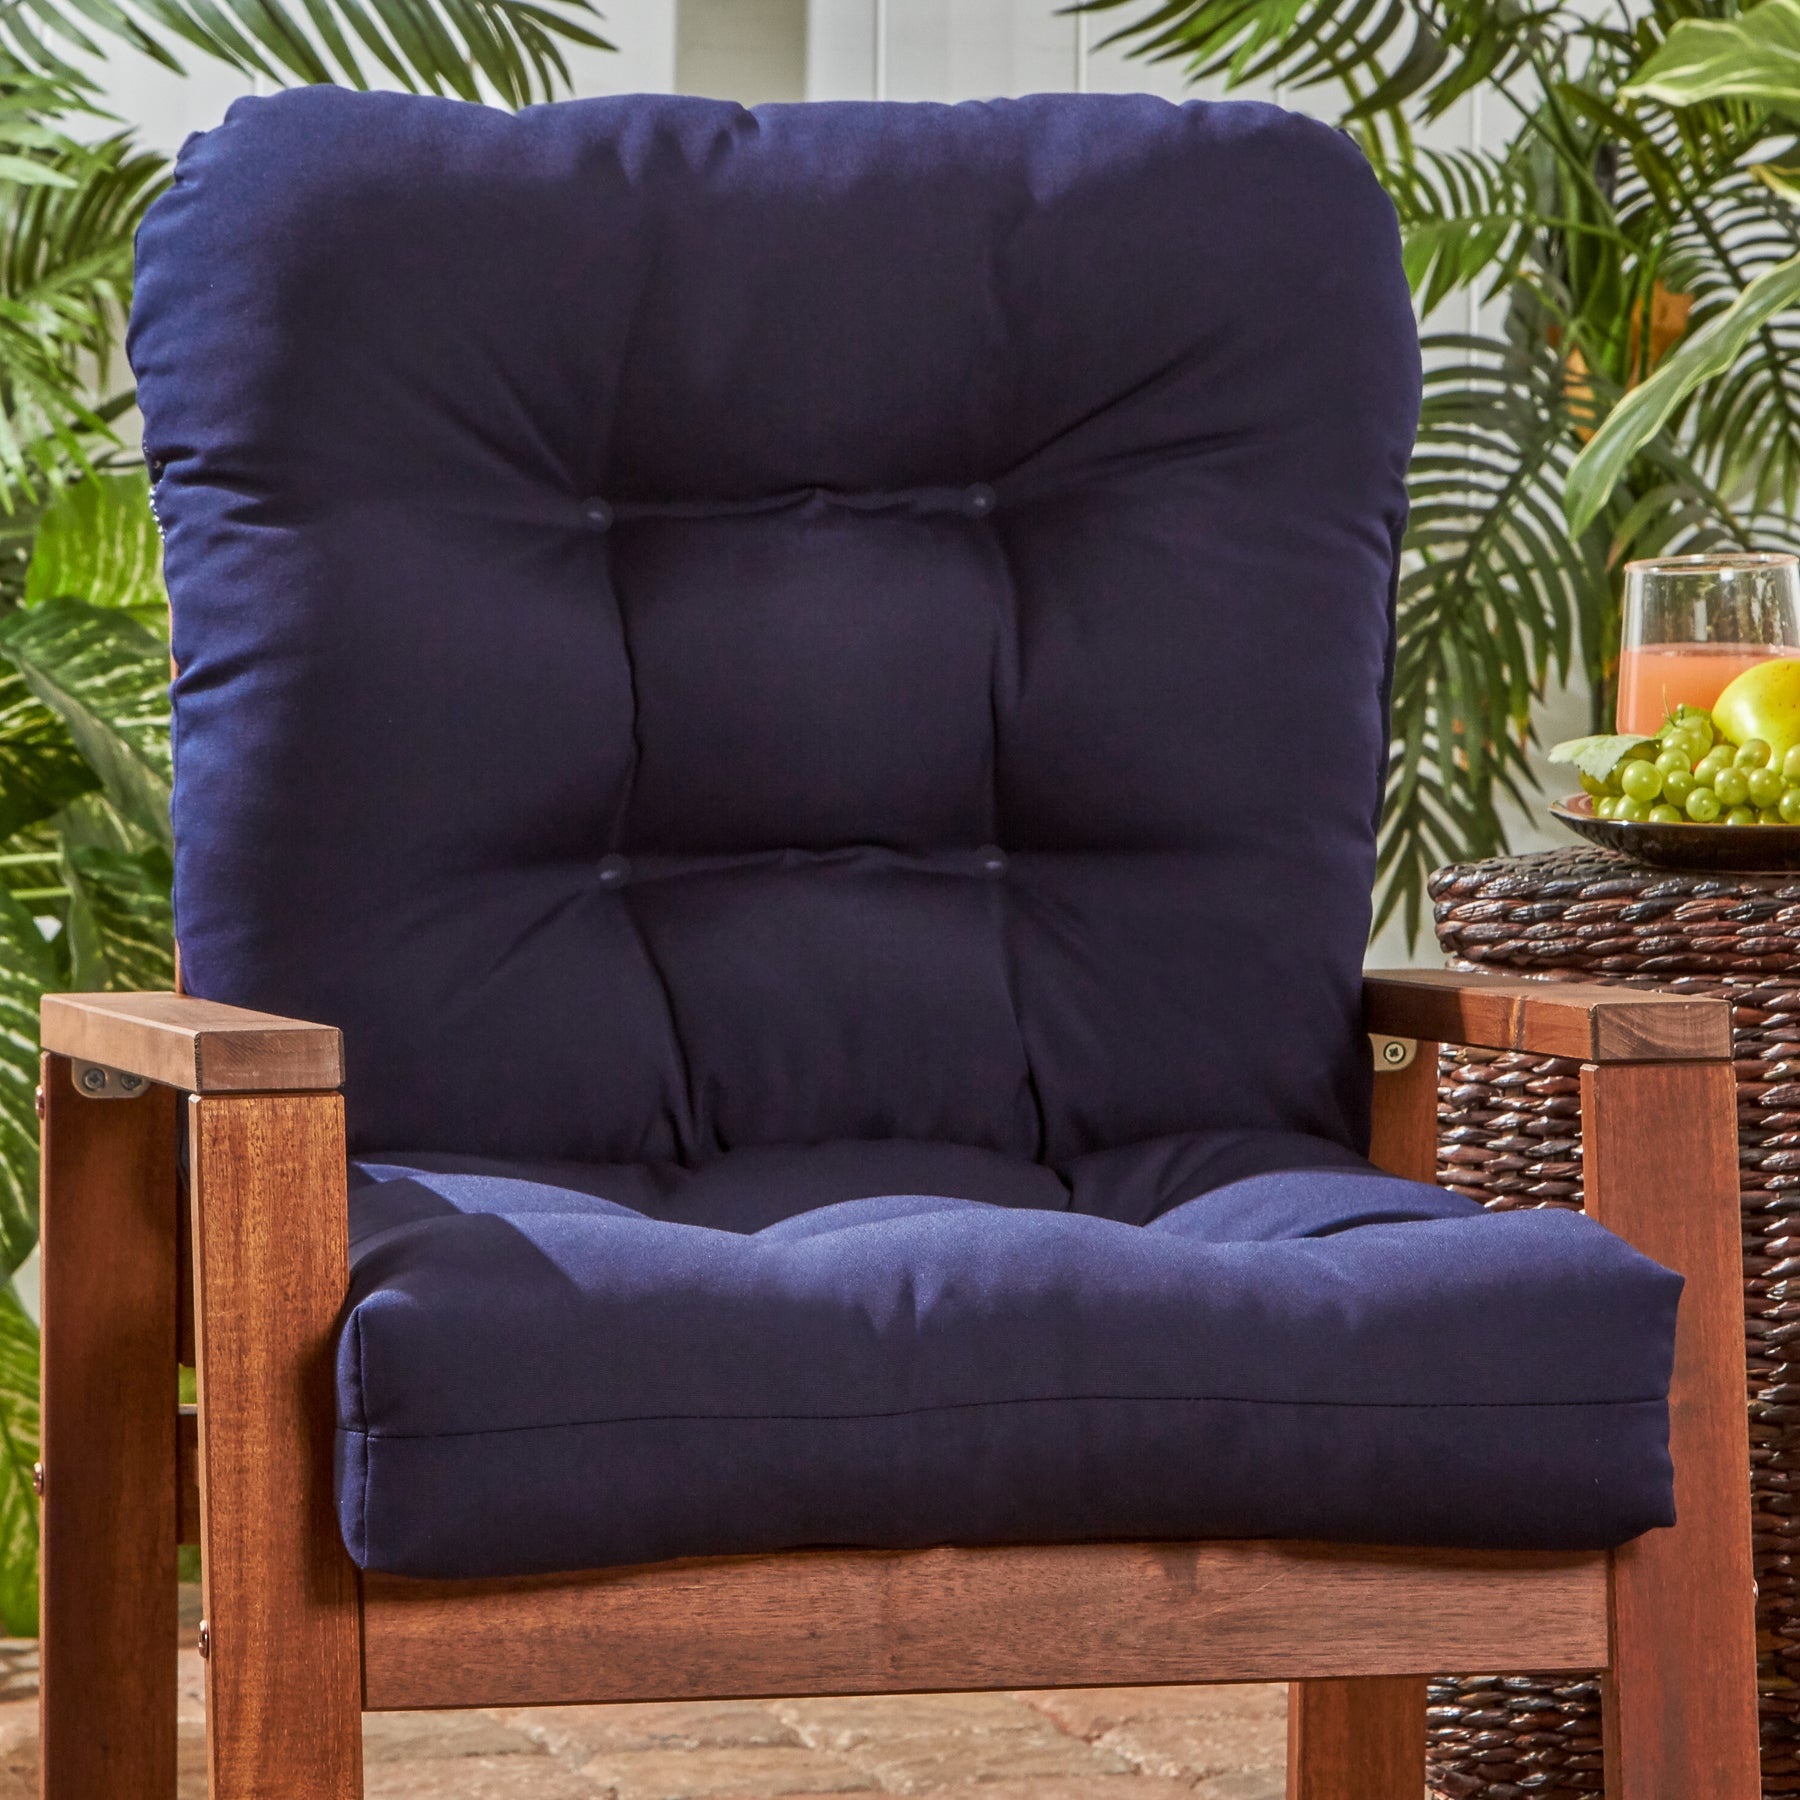 Shop Greendale Home Fashions Outdoor Seat Back Chair Cushion 21w X